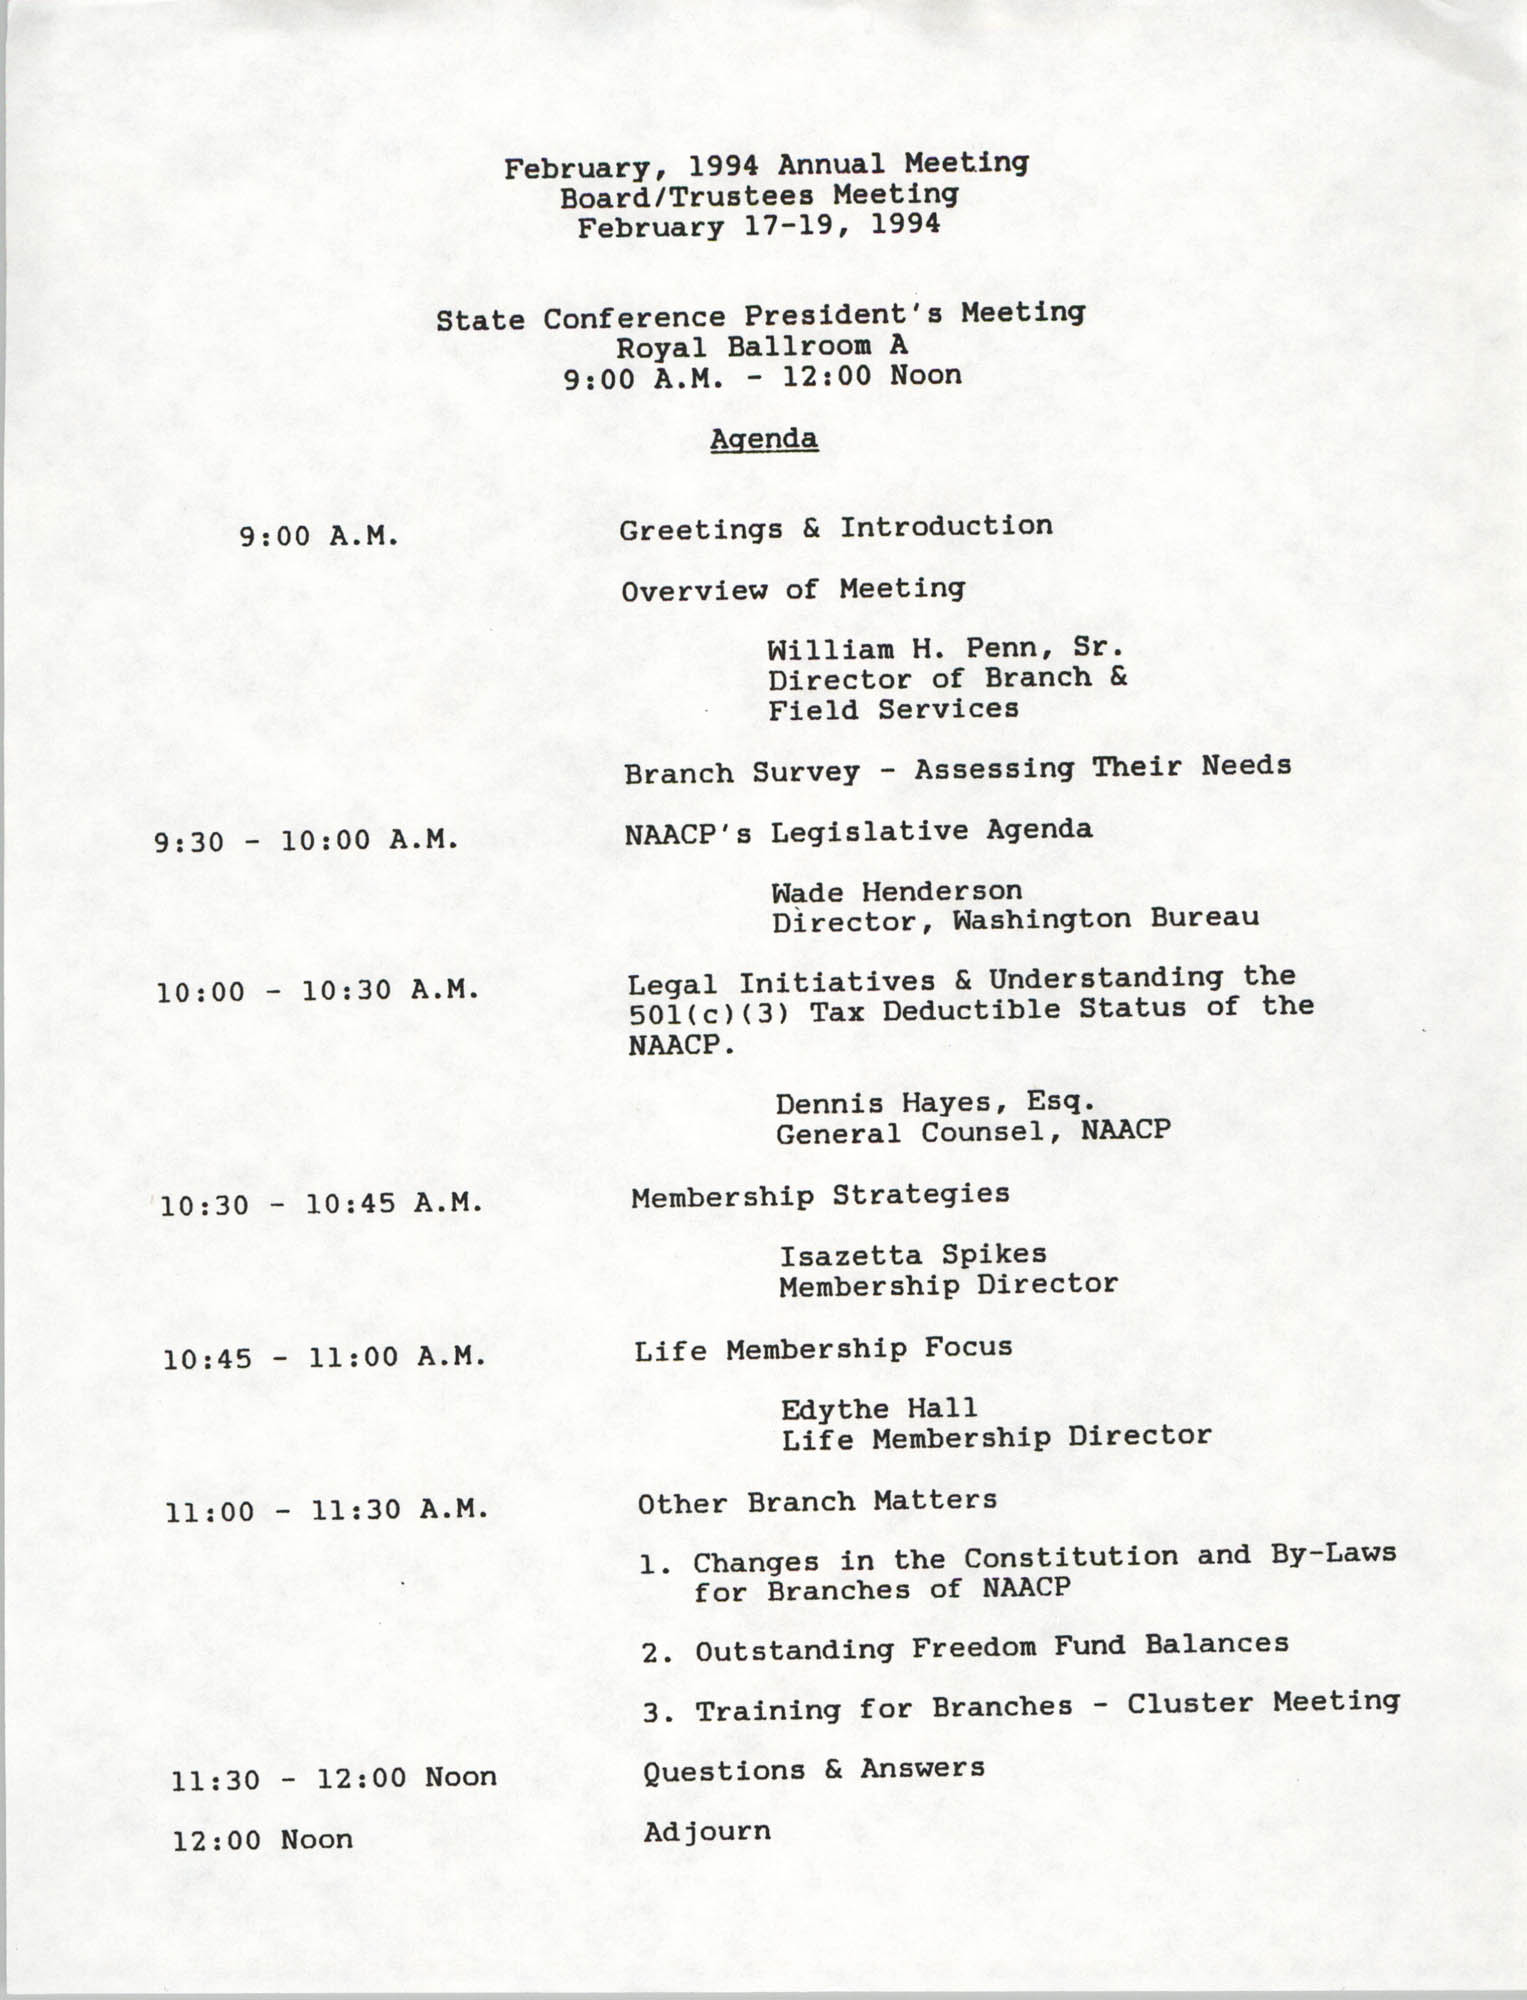 NAACP State Conference President's Meeting Agenda, February 17-19, 1994